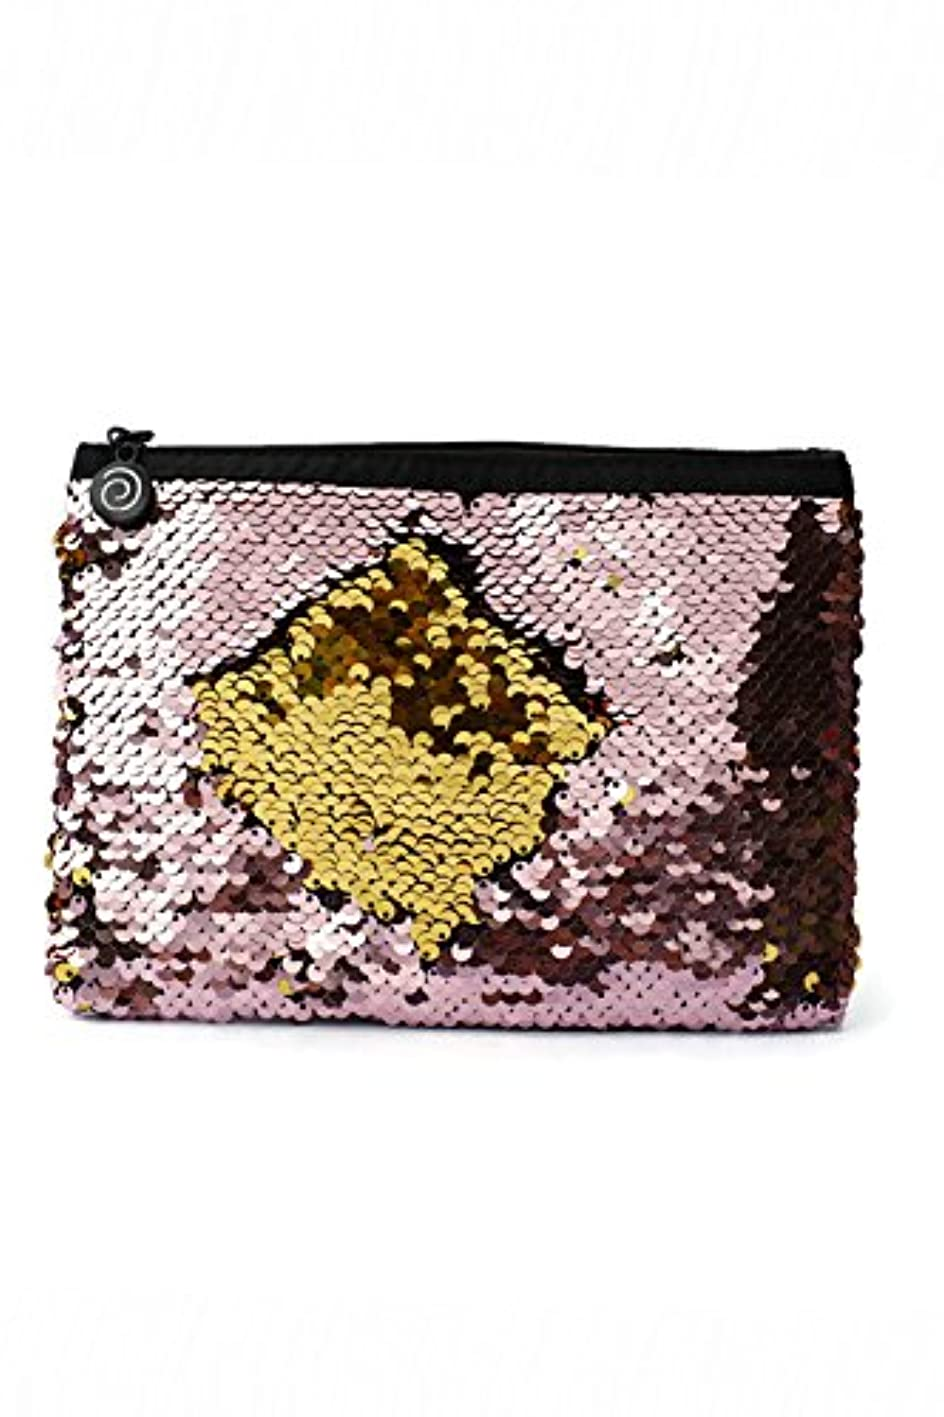 Little Monkey Magic Sequins Mermaid Large Pouch, Makeup Bag, Pencil Bag - Soft Pink & Gold sqzwvqxlupg514